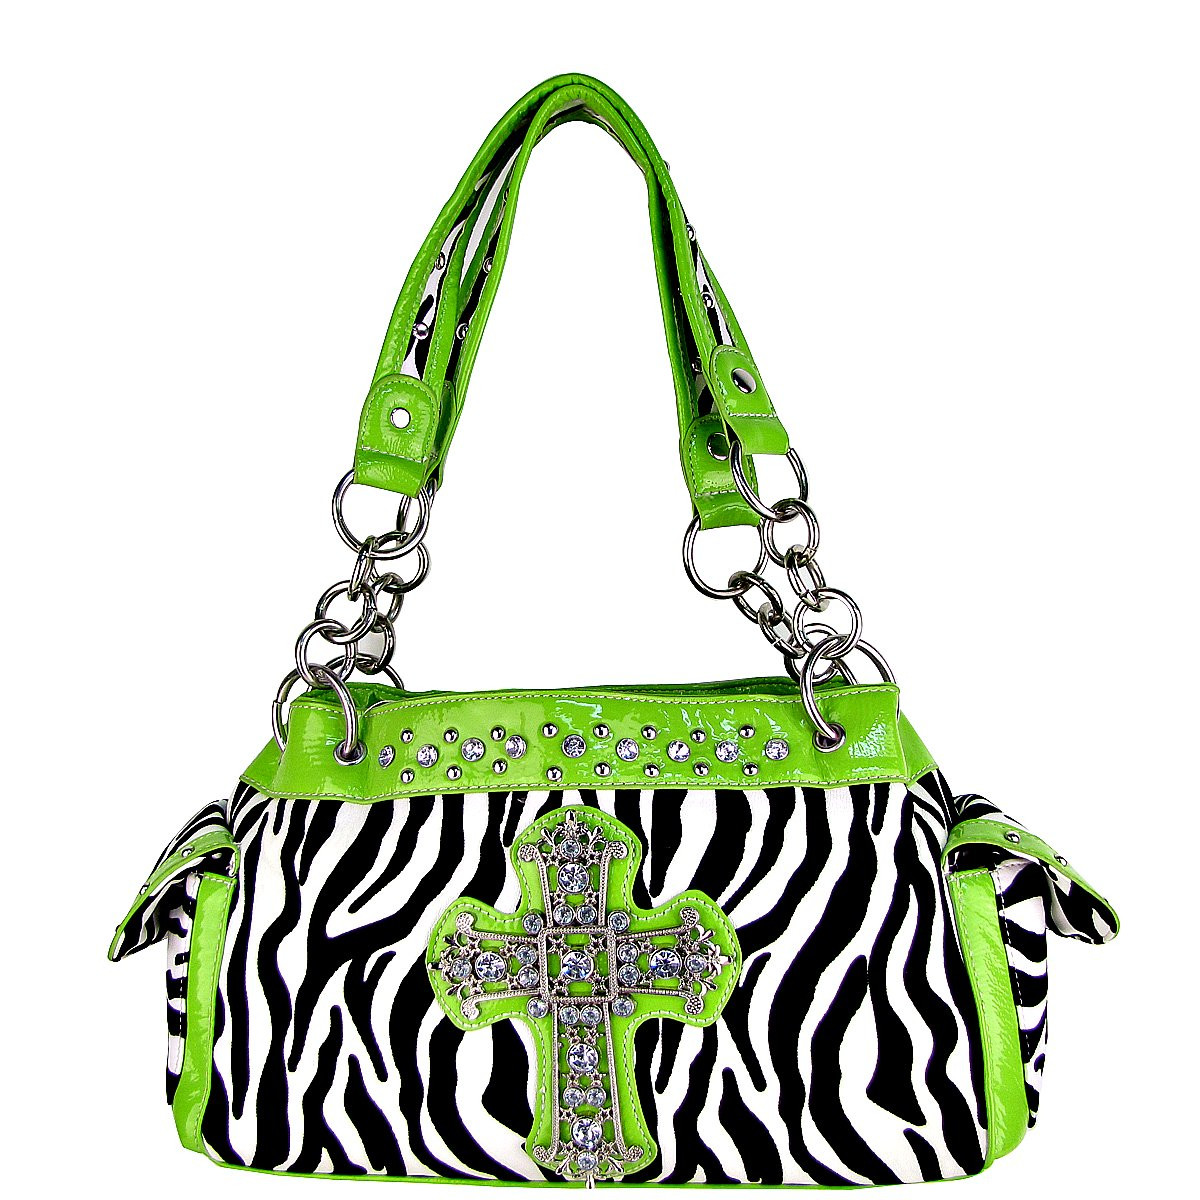 GREEN ZEBRA PRINT CROSS SHOULDER HANDBAG HB1-98001GRN